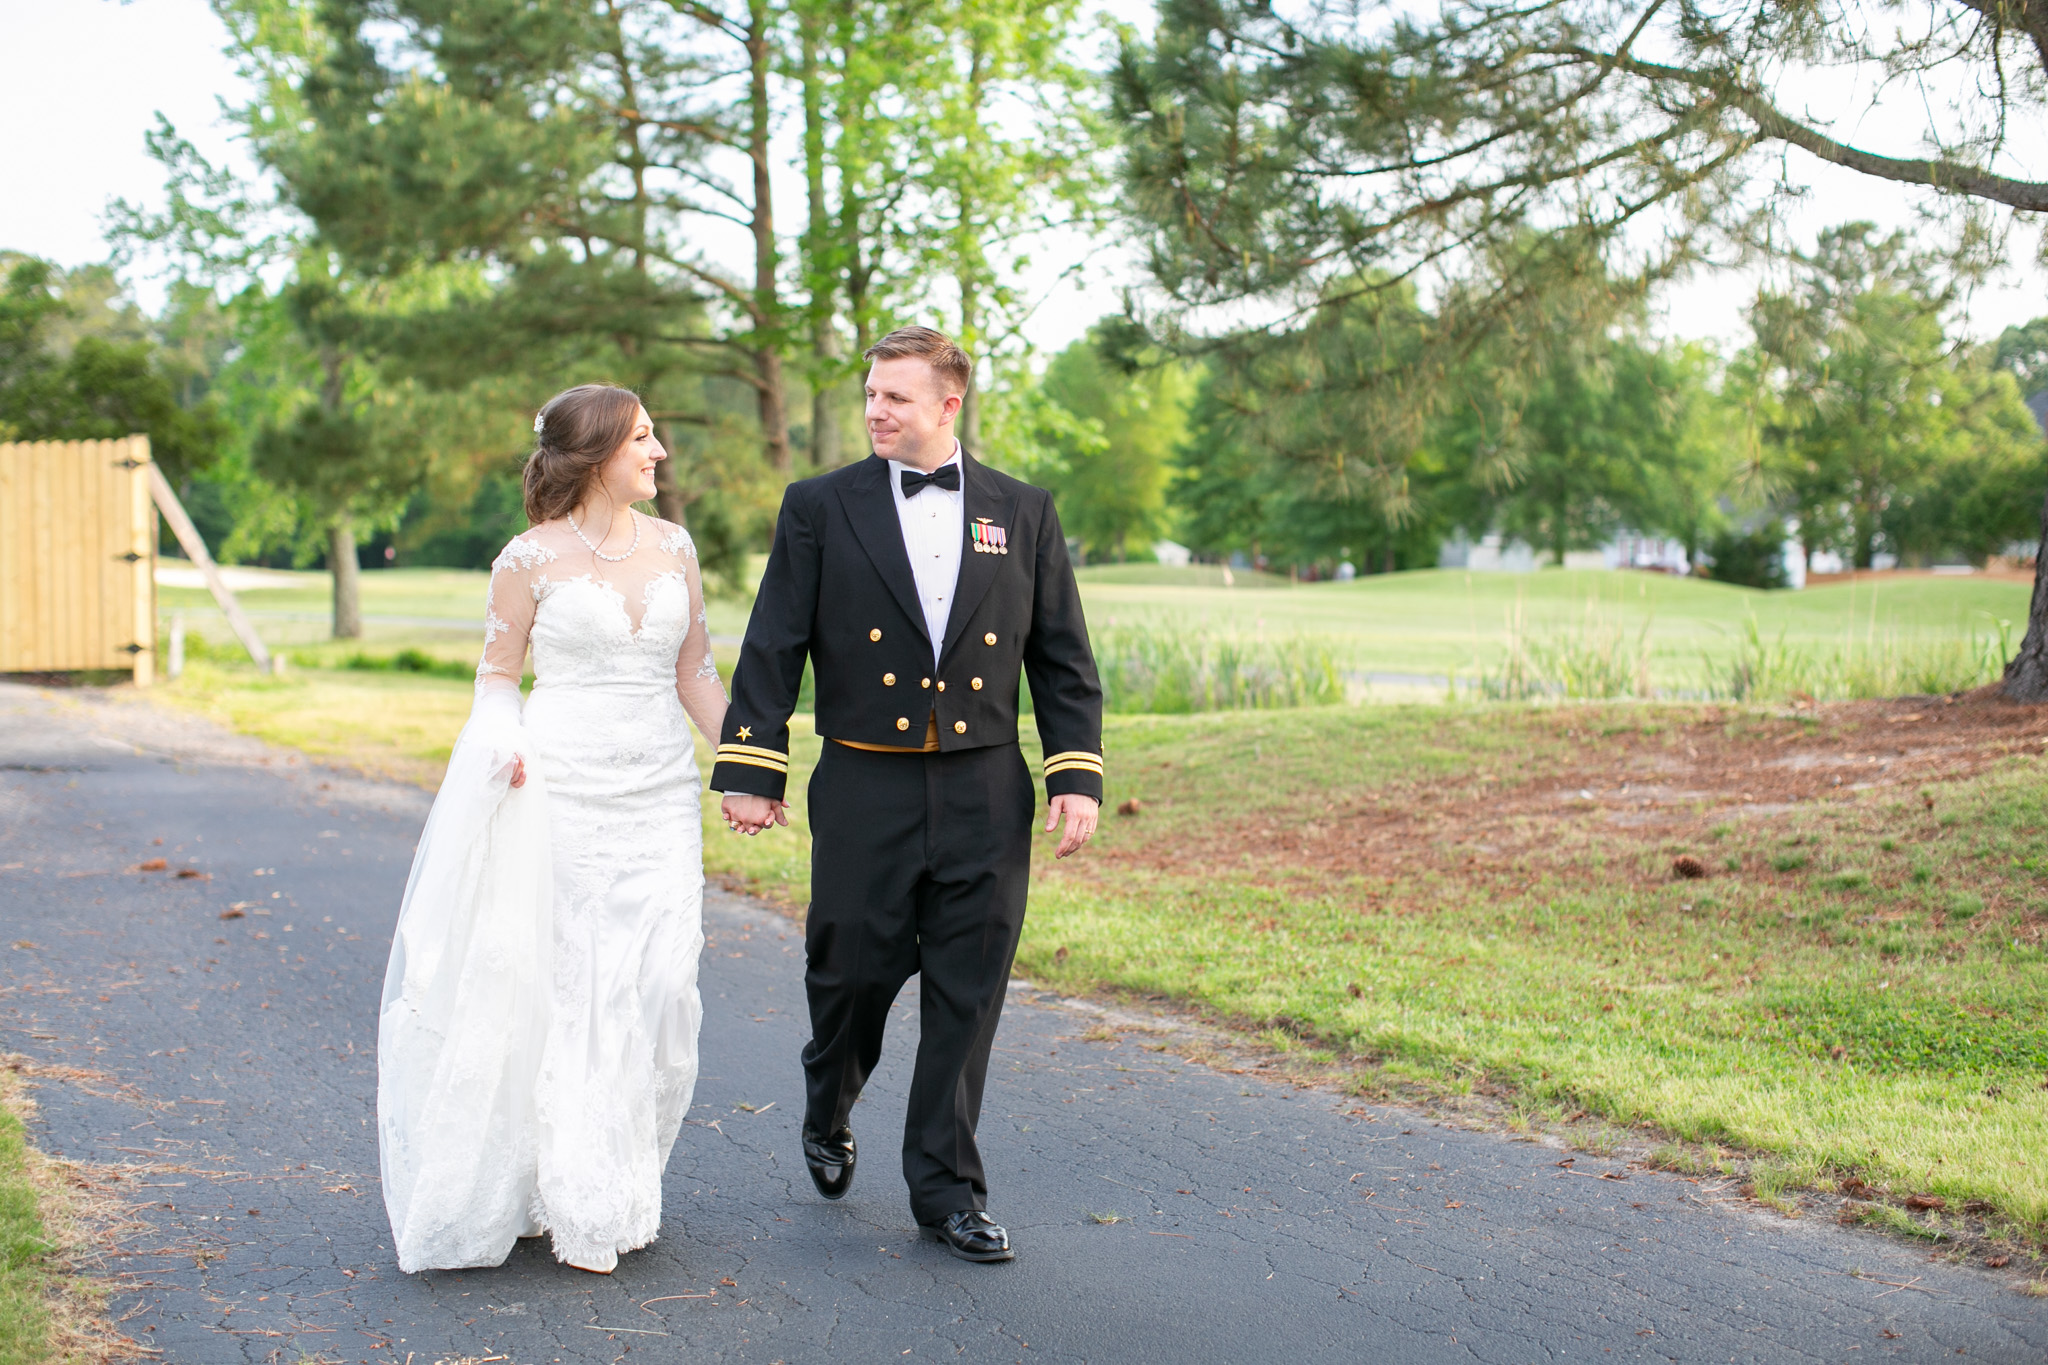 bride and grooming walking on golf course